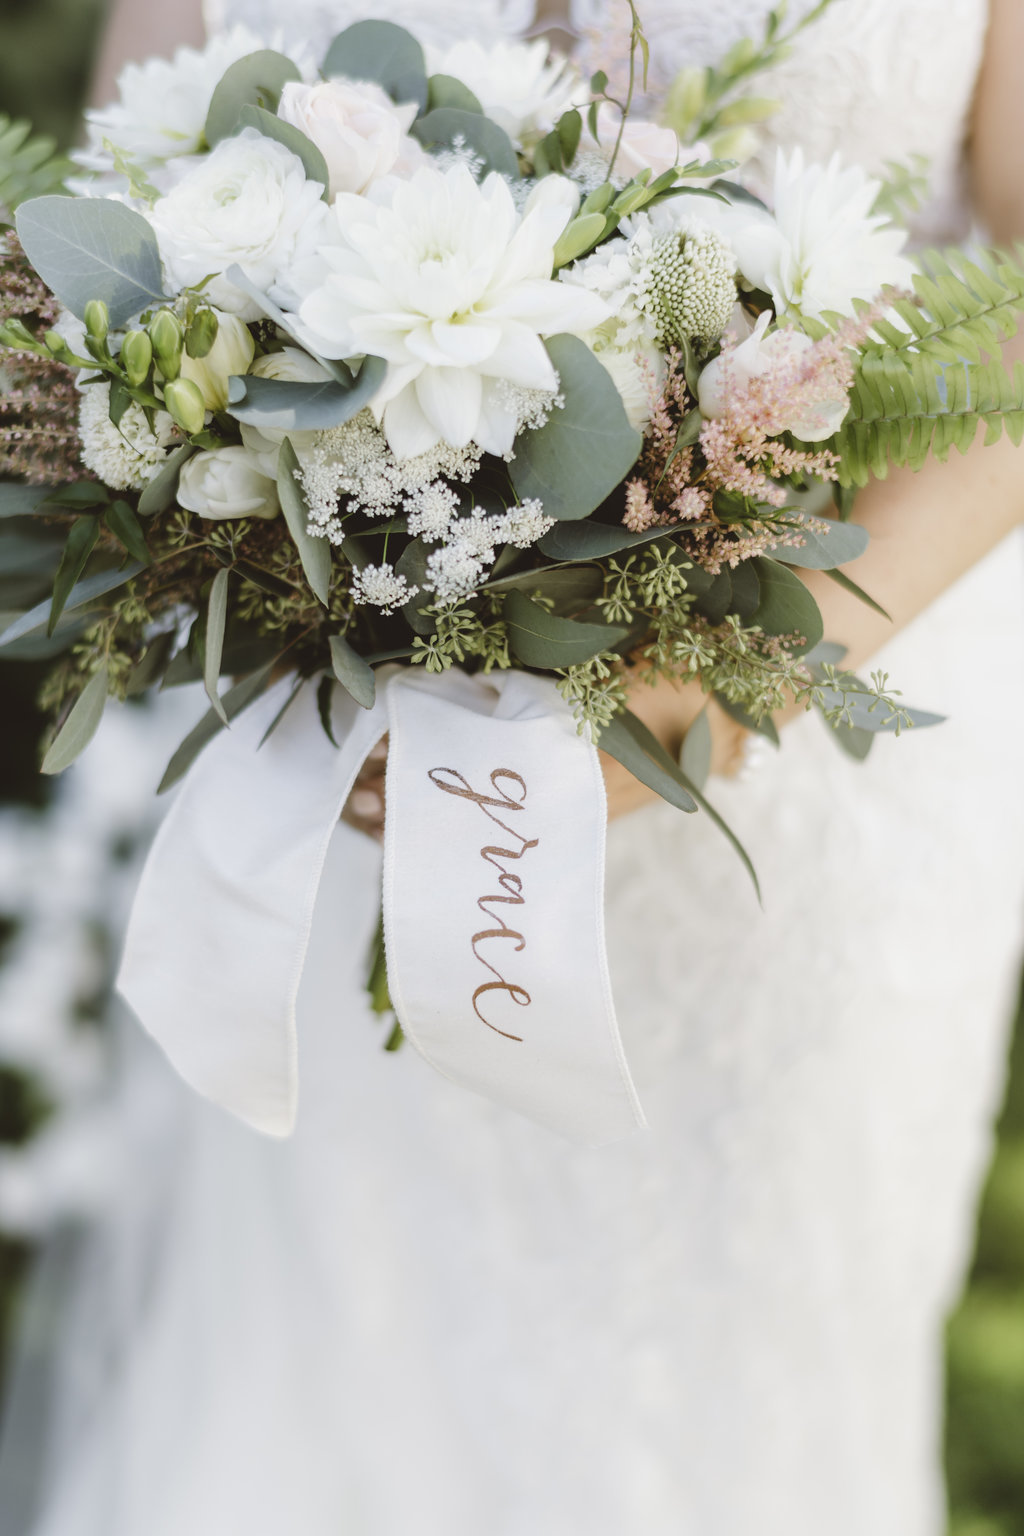 Monica_Relyea_Events_Alicia_King_Photography_Highschool_Sweethearts_Wedding_Grace_and-Doug-Senate-Garage-bride-bouquet